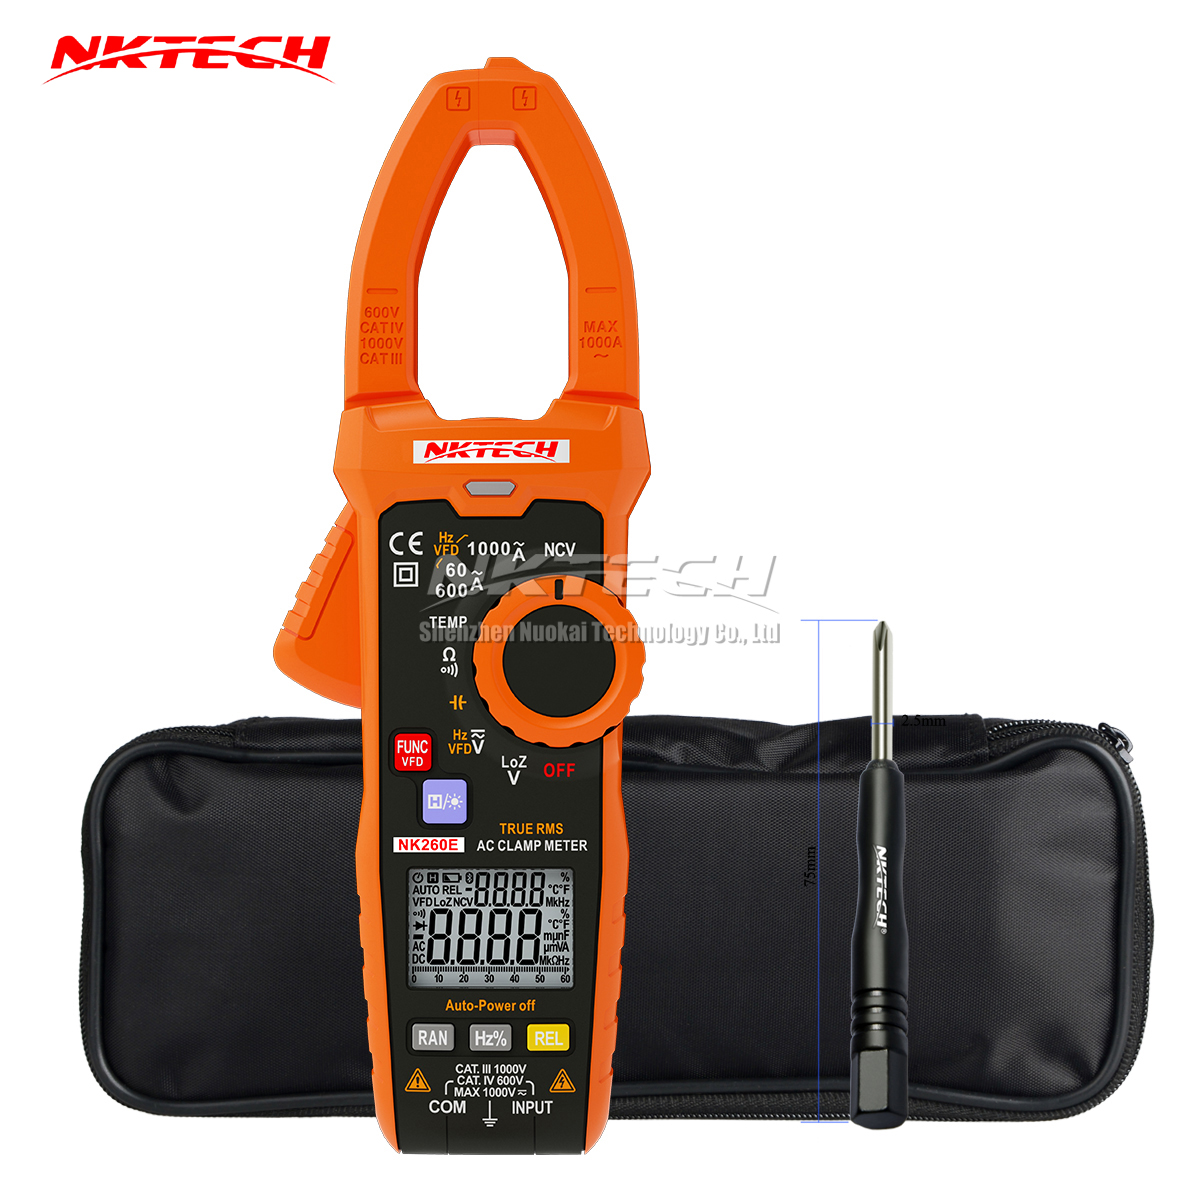 NKTECH NK260E Digital Clamp Meter 1000V VFD Analogue Bar Graph Ture RMS Temperature AC DC V ACA Resistance Frequency Capacitance